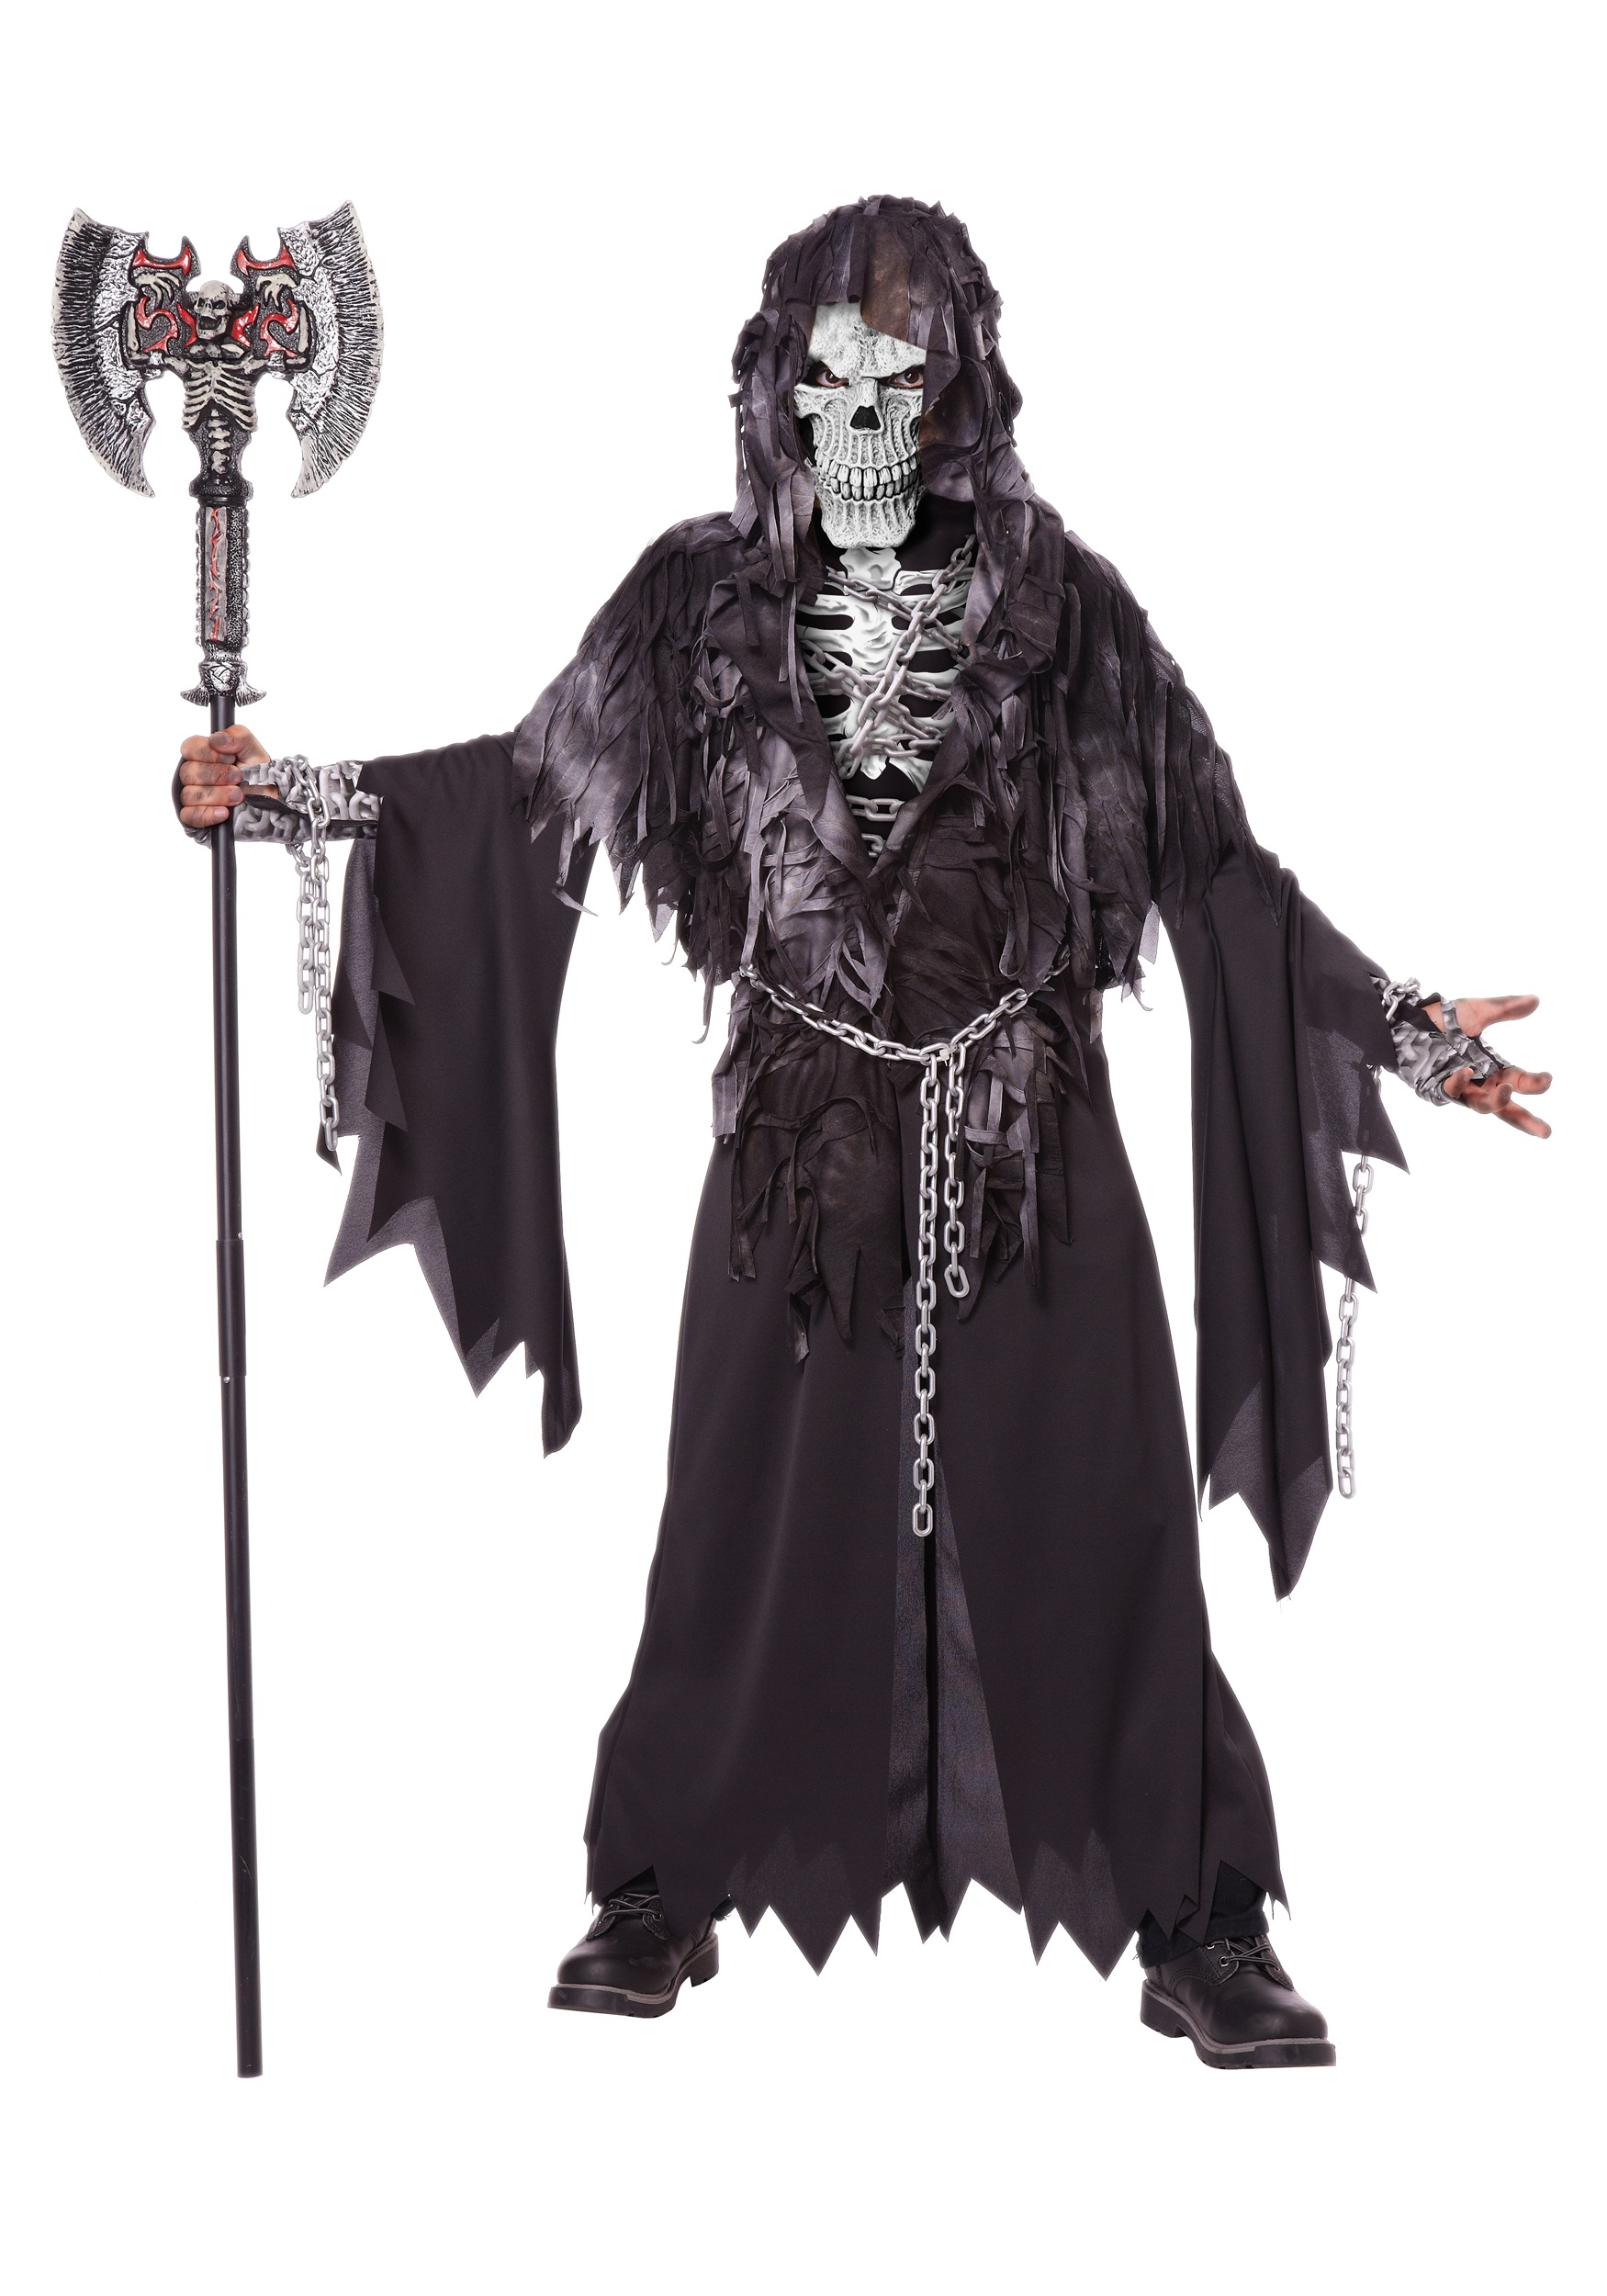 Childu0027s Evil Unchained Skeleton Costume  sc 1 st  Halloween Costumes : evil halloween costume  - Germanpascual.Com